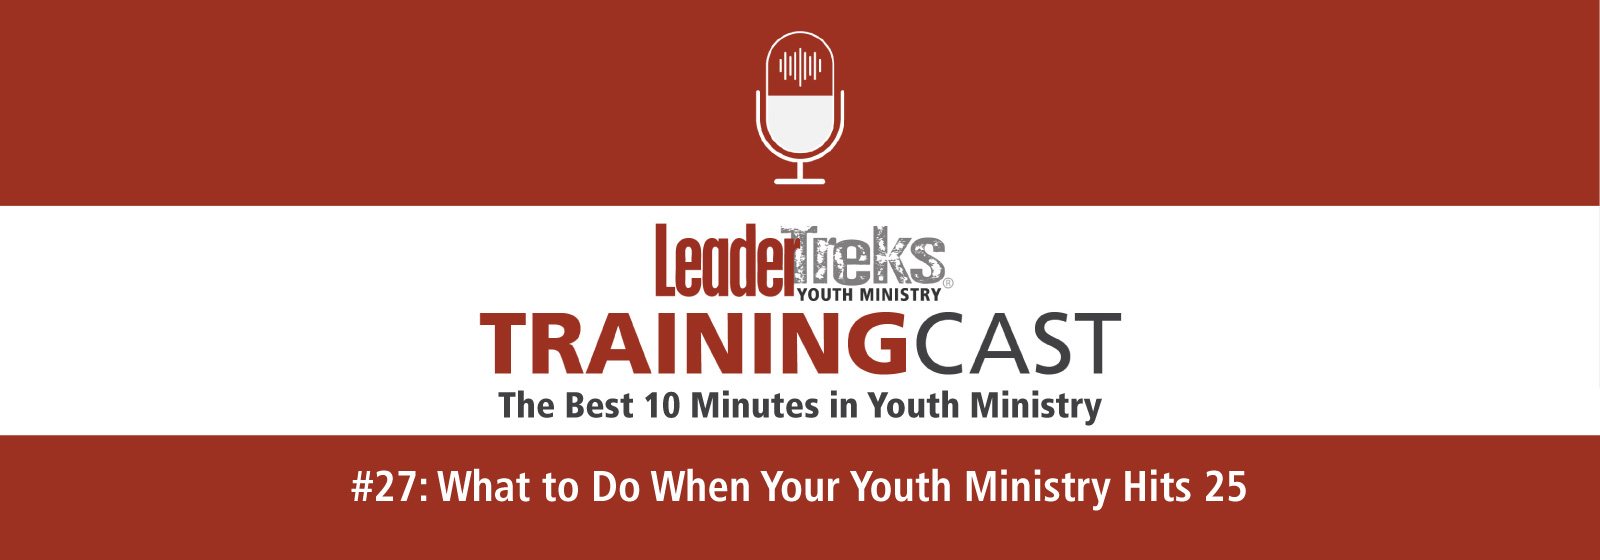 what to do when your youth ministry hits 25 trainingcast